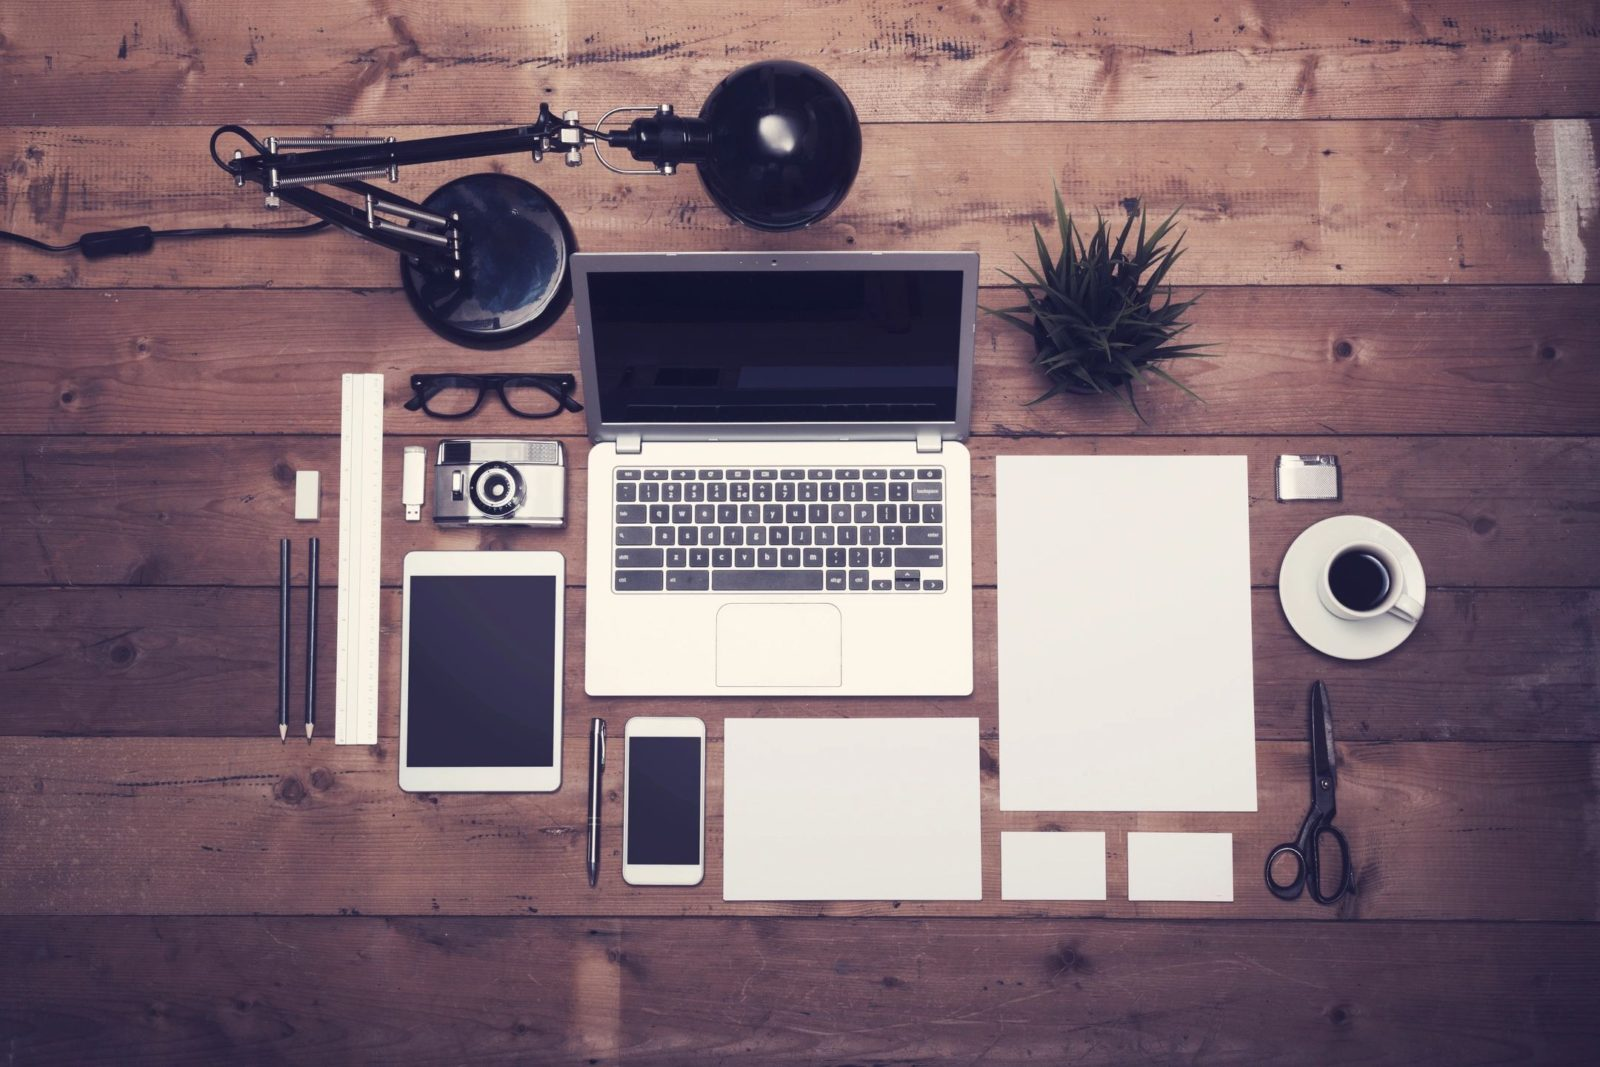 Business blogging: Gadgets on the table - laptop, tablet, smartphone, paper, ballpens, table lamp